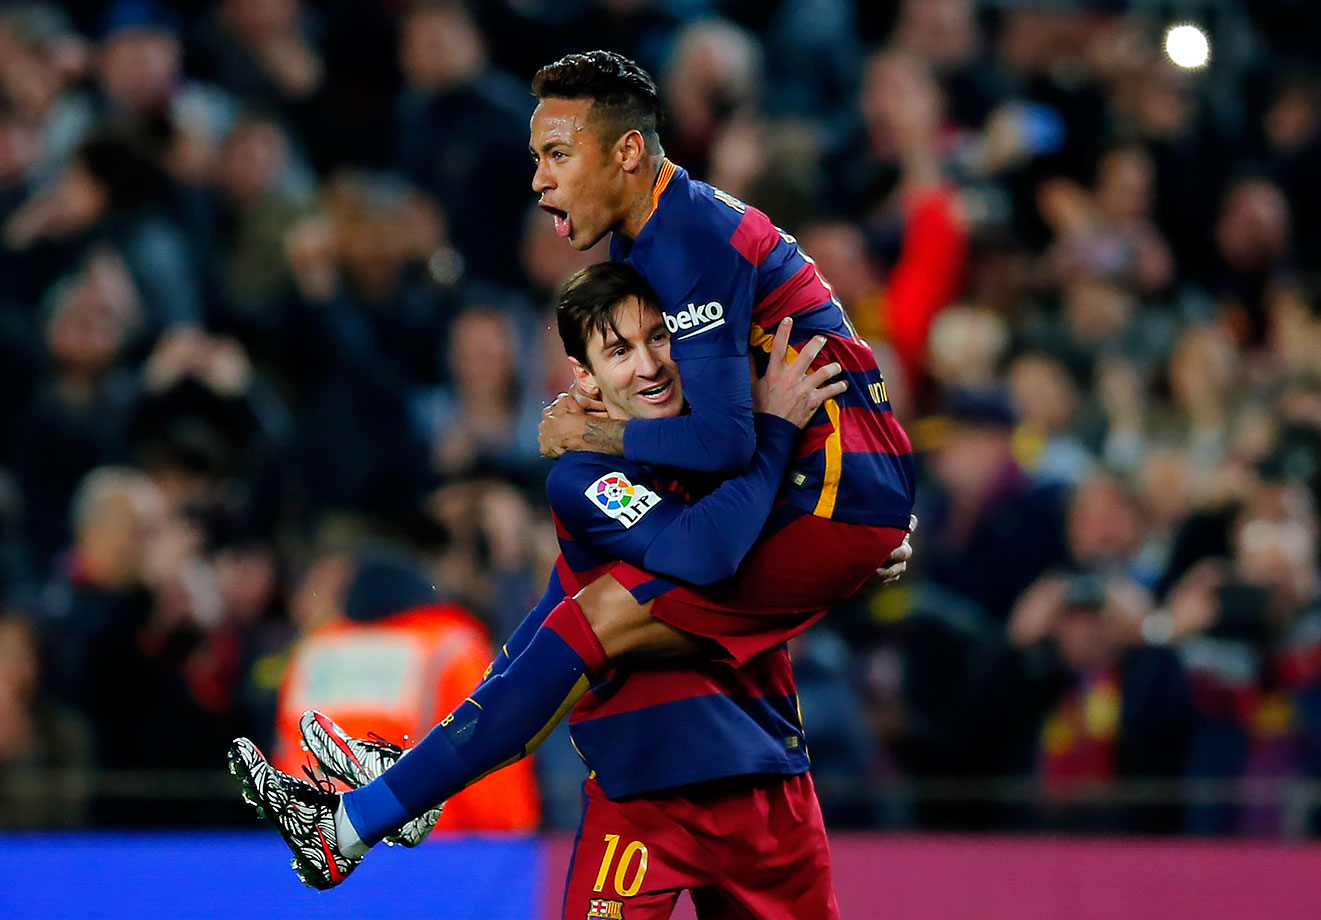 FC Barcelona's Lionel Messi celebrates after scoring against Sevilla with his teammate Neymar during a Spanish La Liga match in Barcelona, Spain.